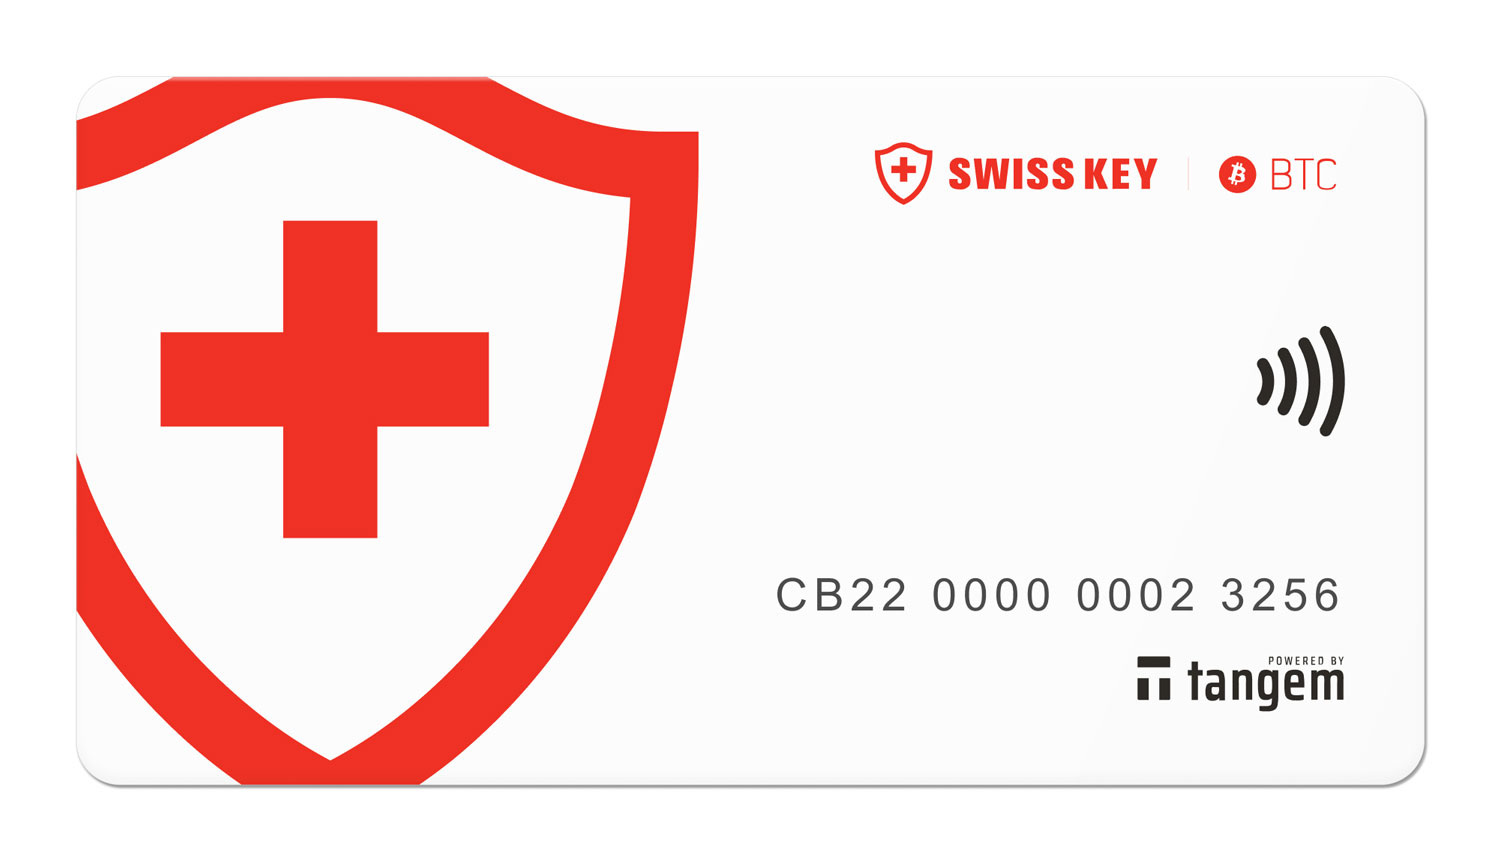 Tangem for Swisskey: BTC